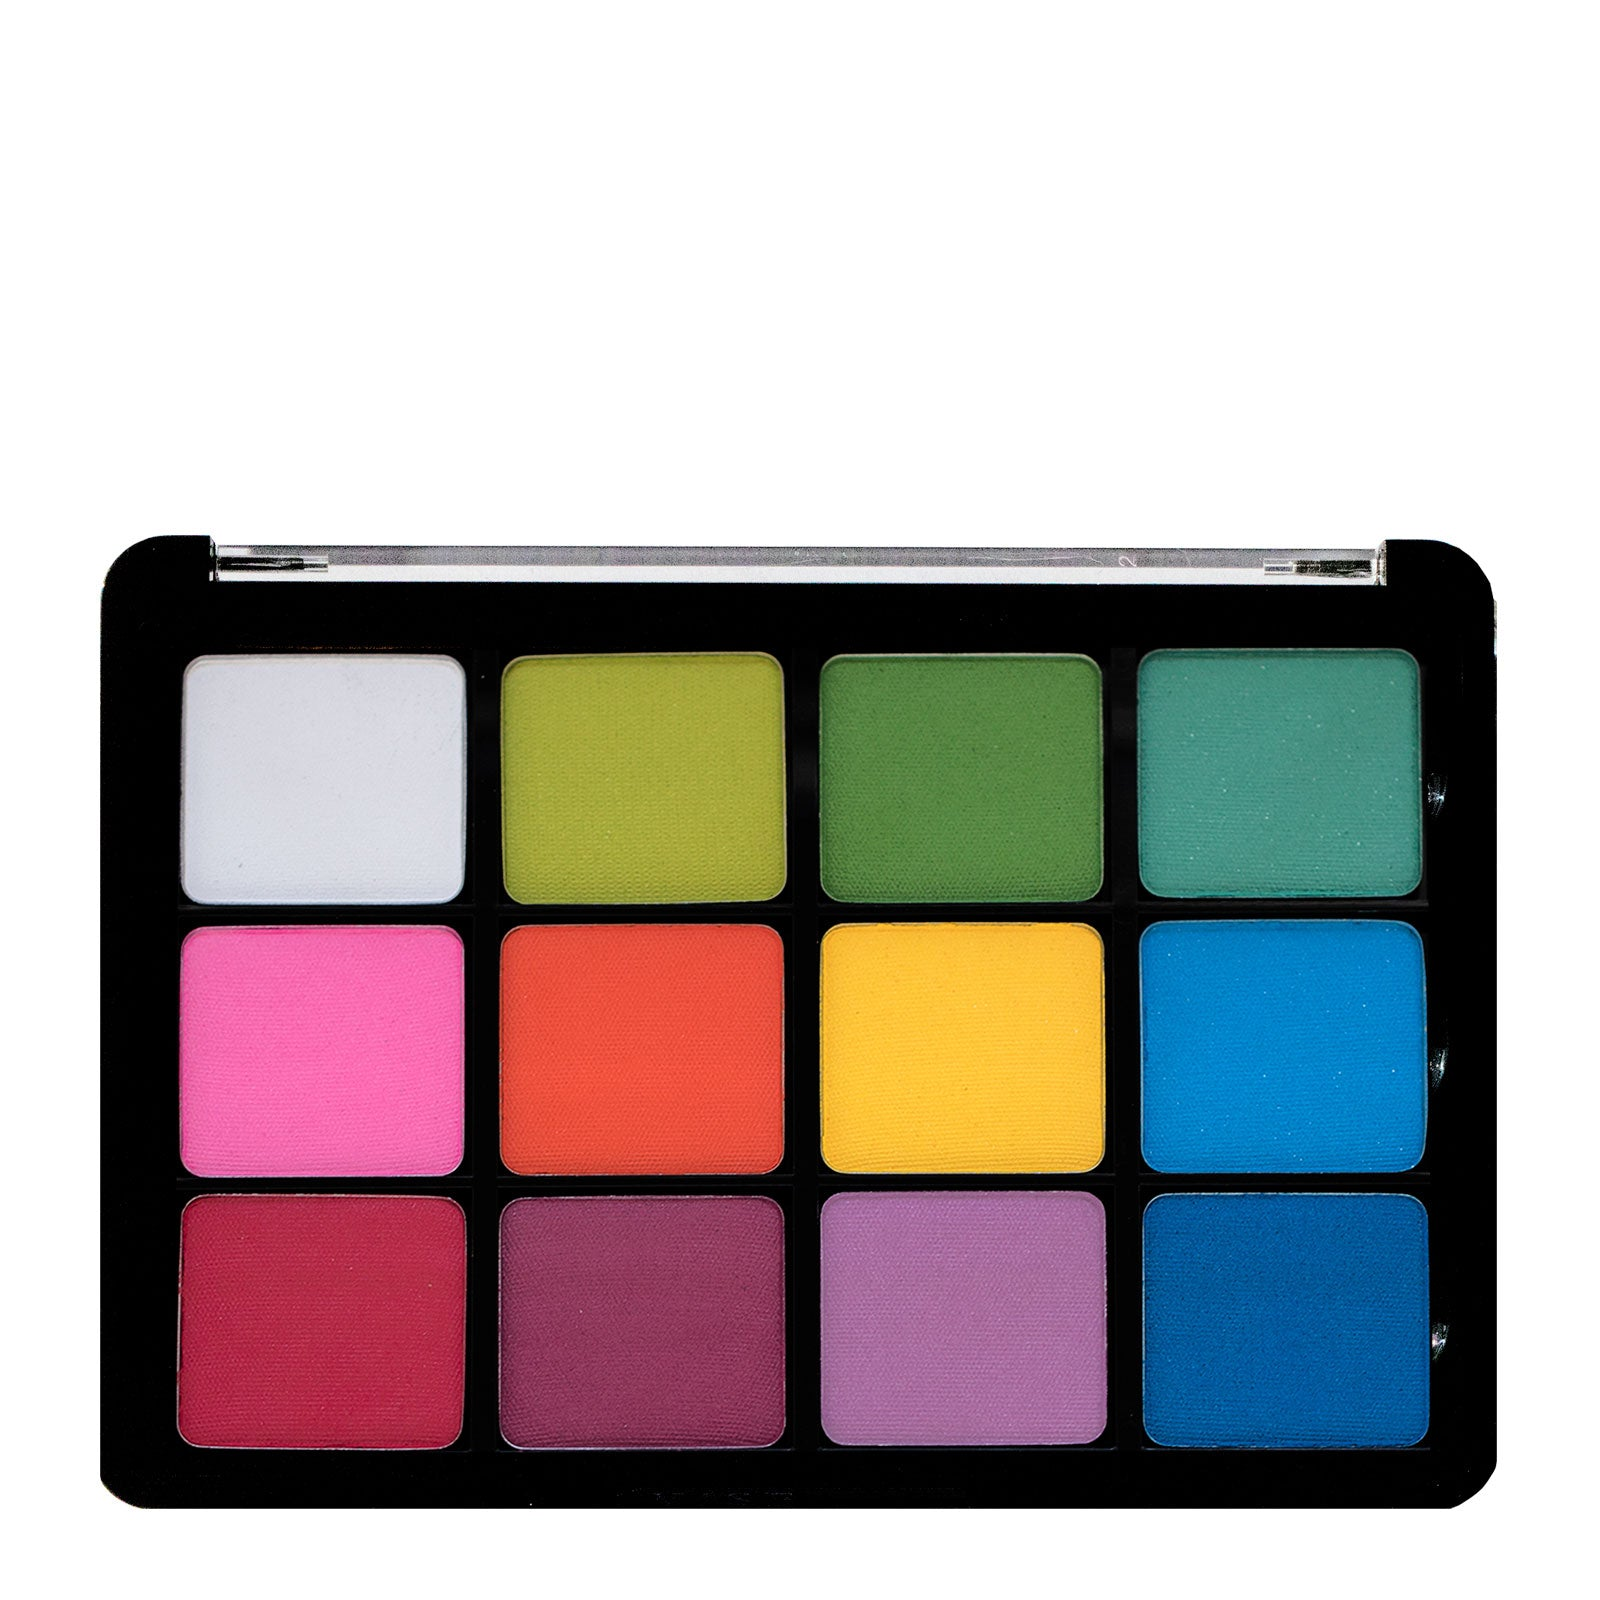 Viseart 08 Editorial Brights Eyeshadow Palette